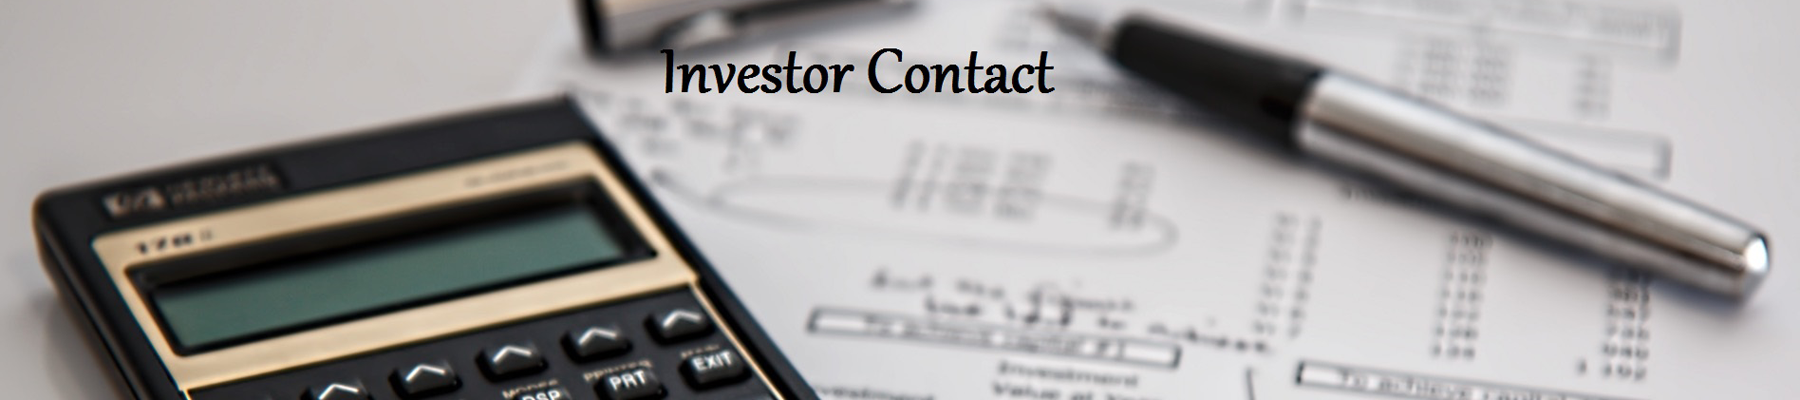 Investor Contact